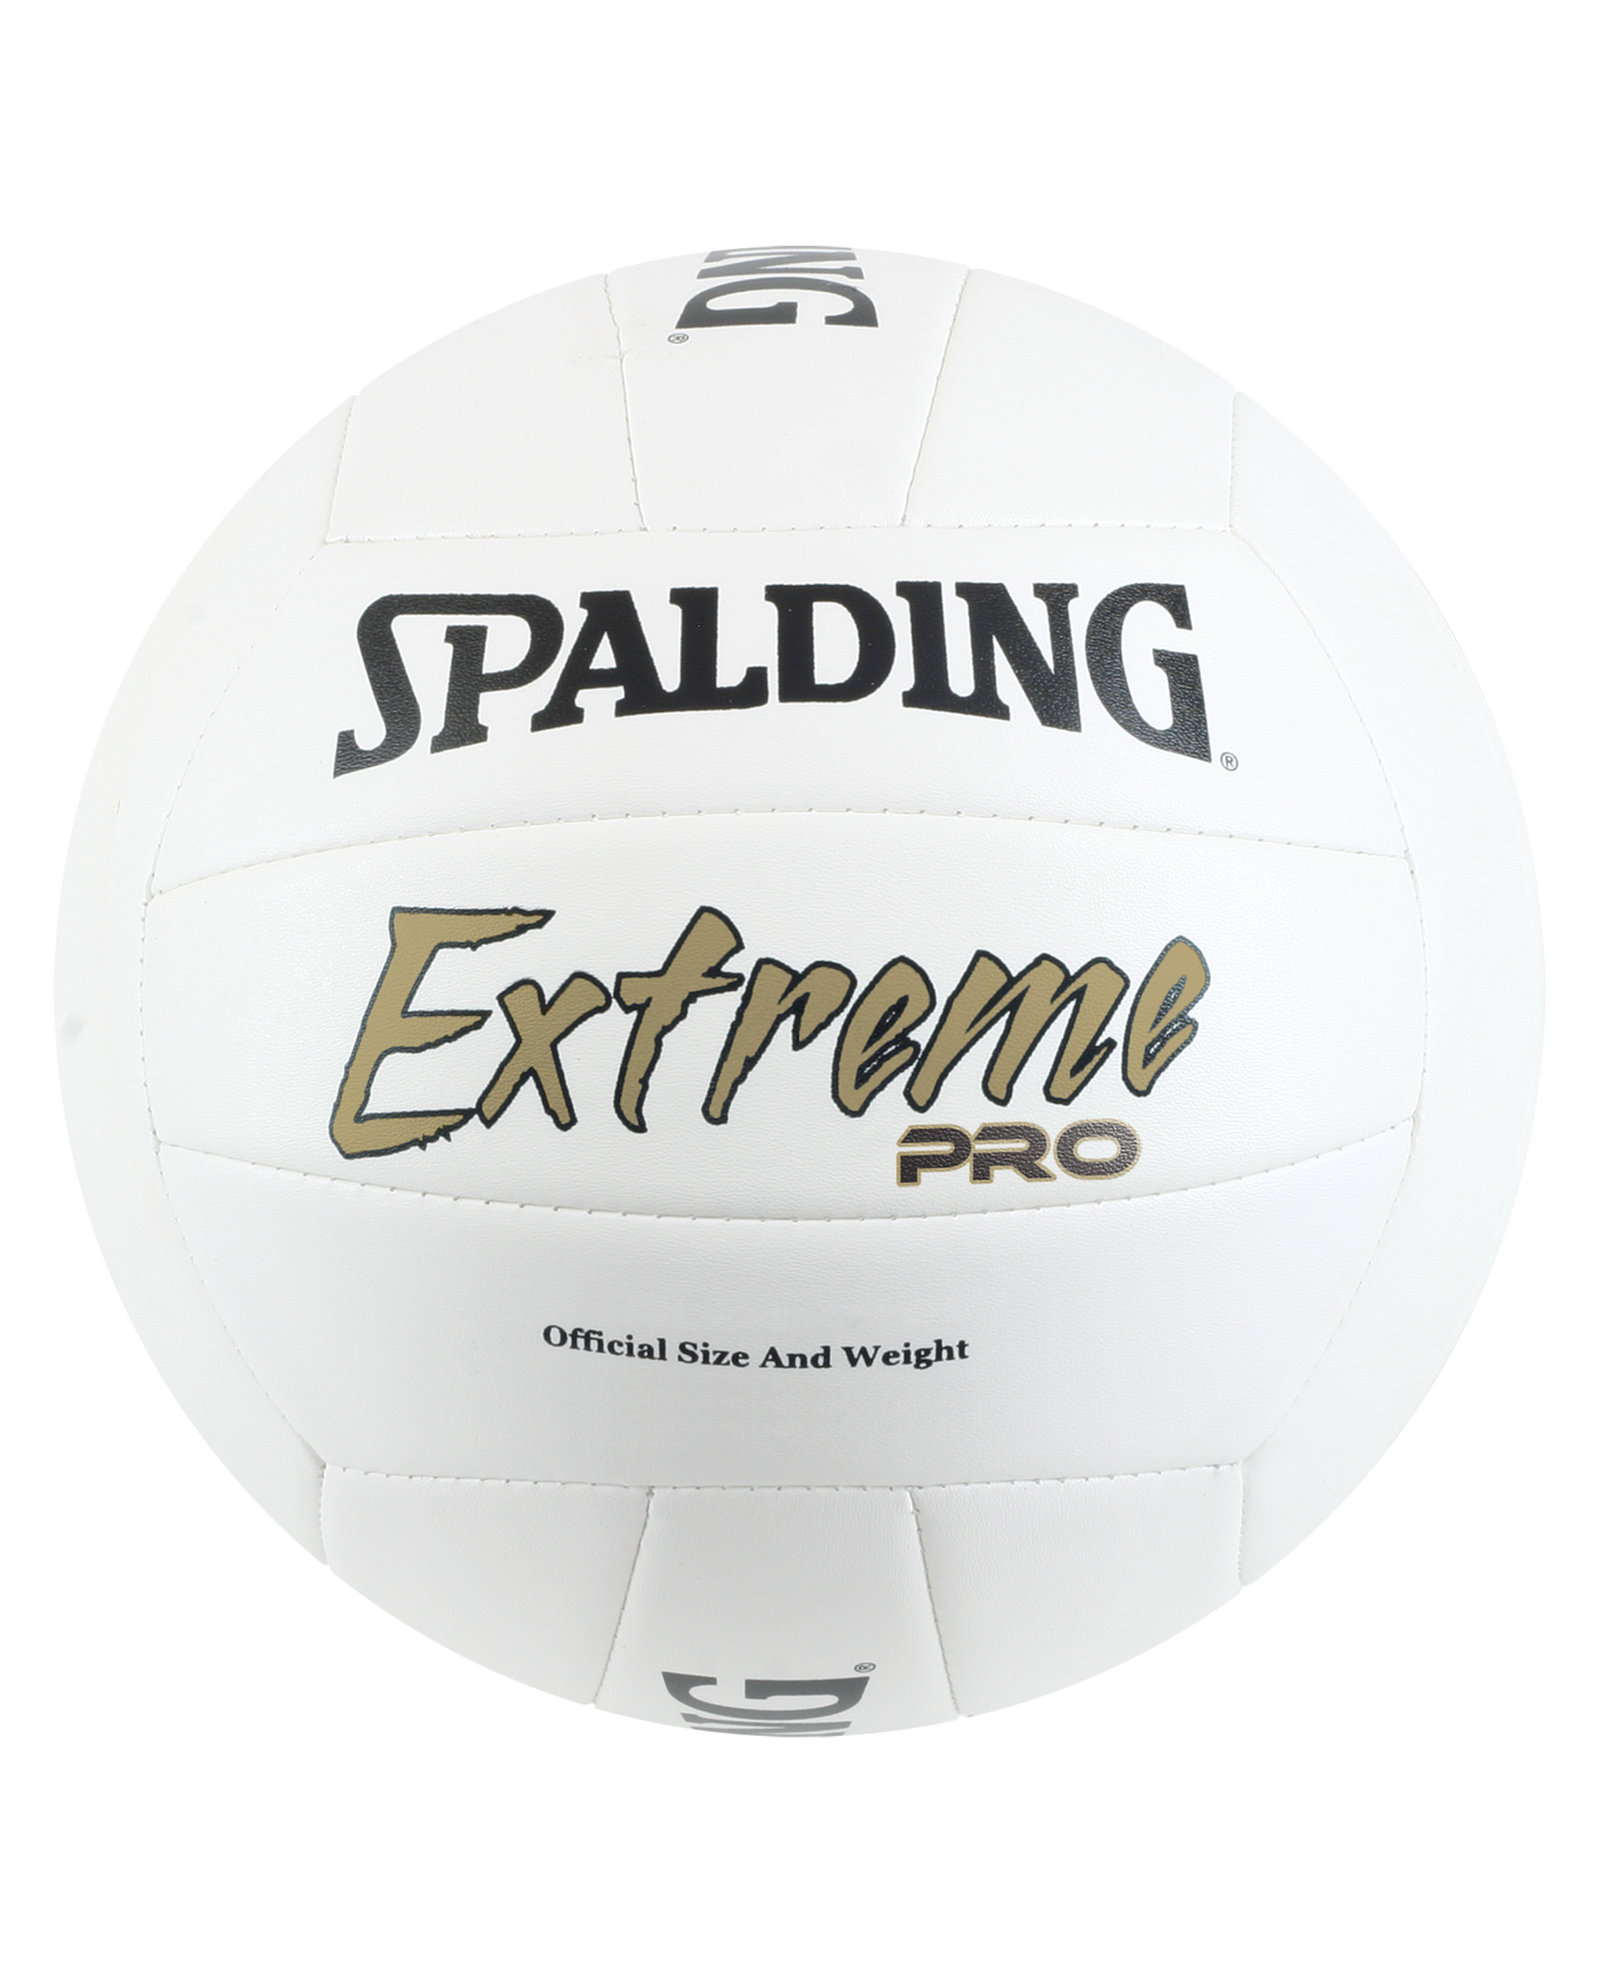 spalding volleyball white